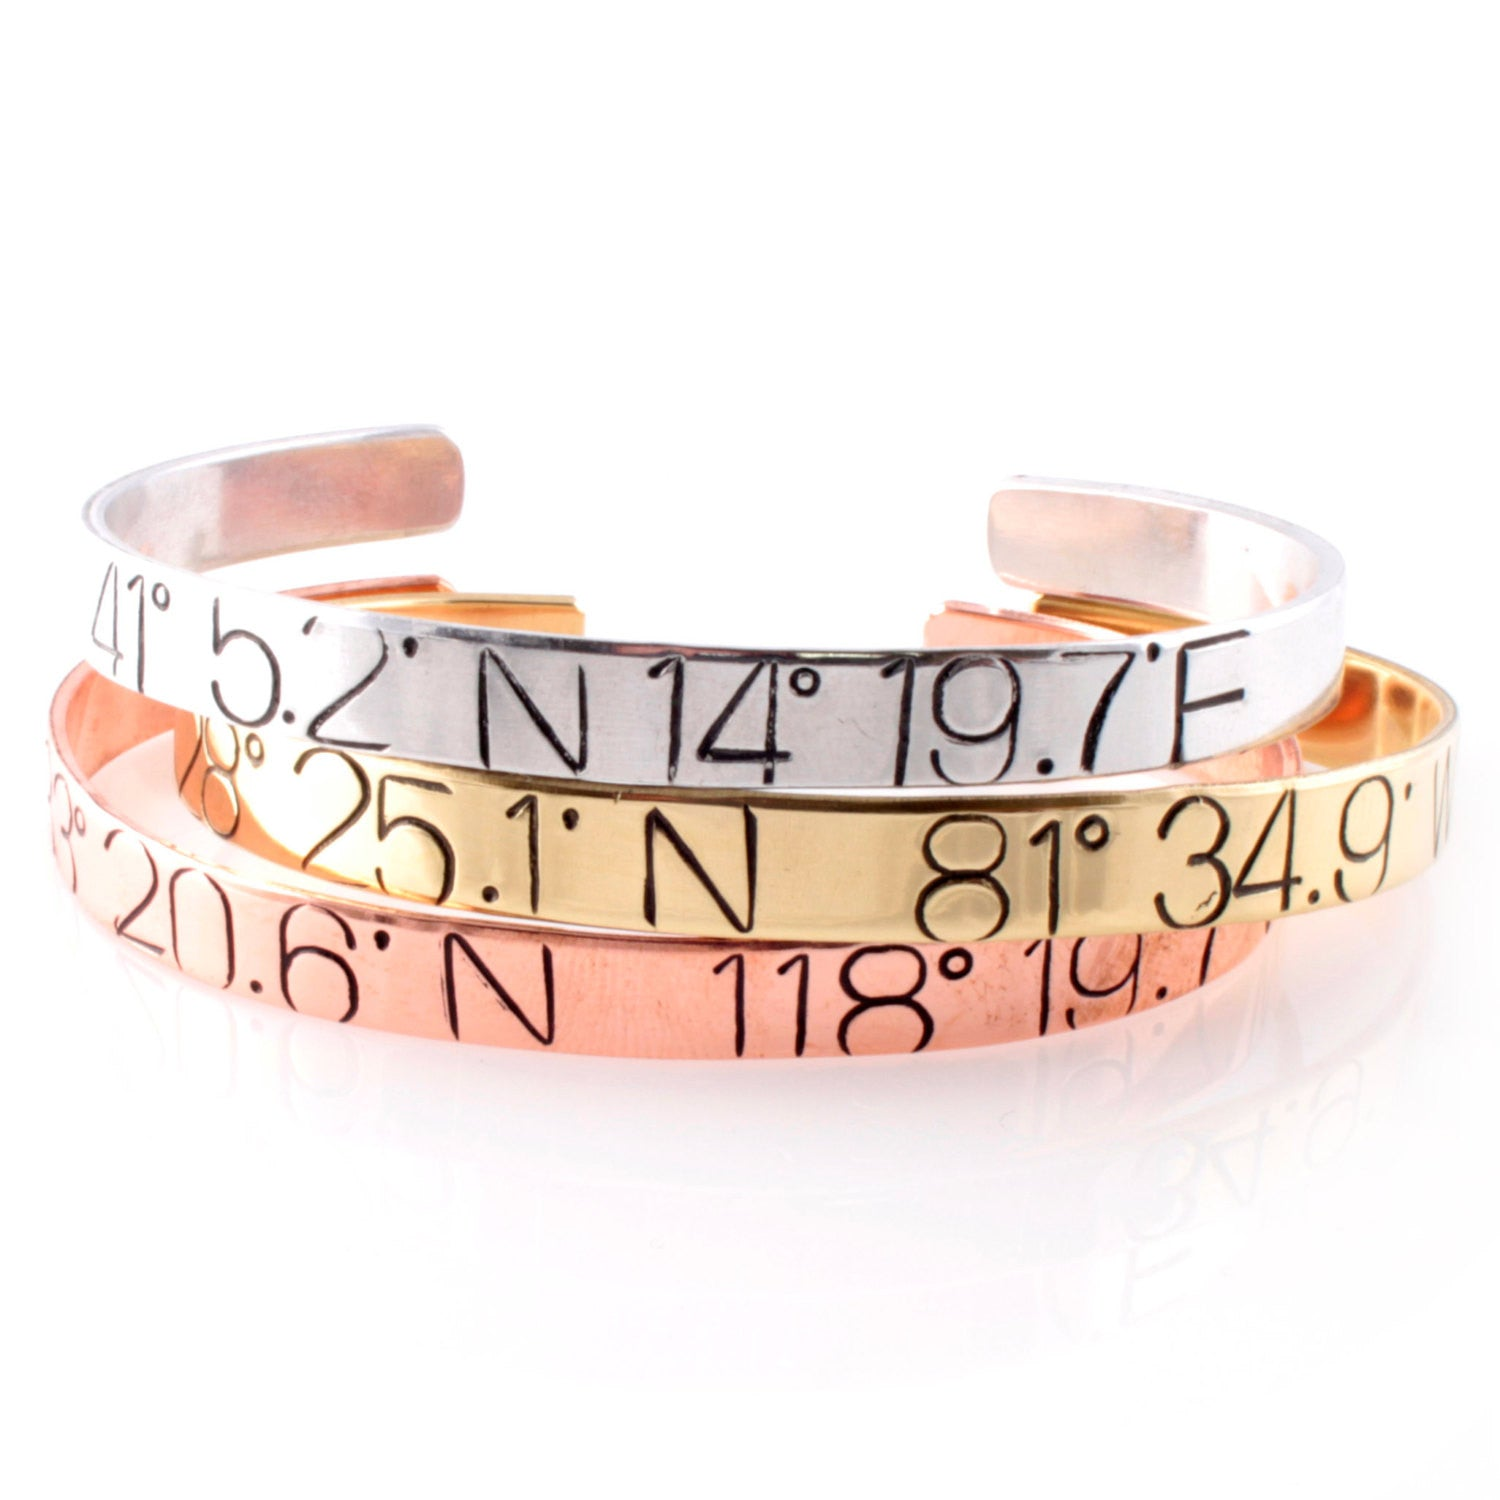 strong lat motivational long message inspirational sweet courageous bracelet size and pin quote bangle be romance